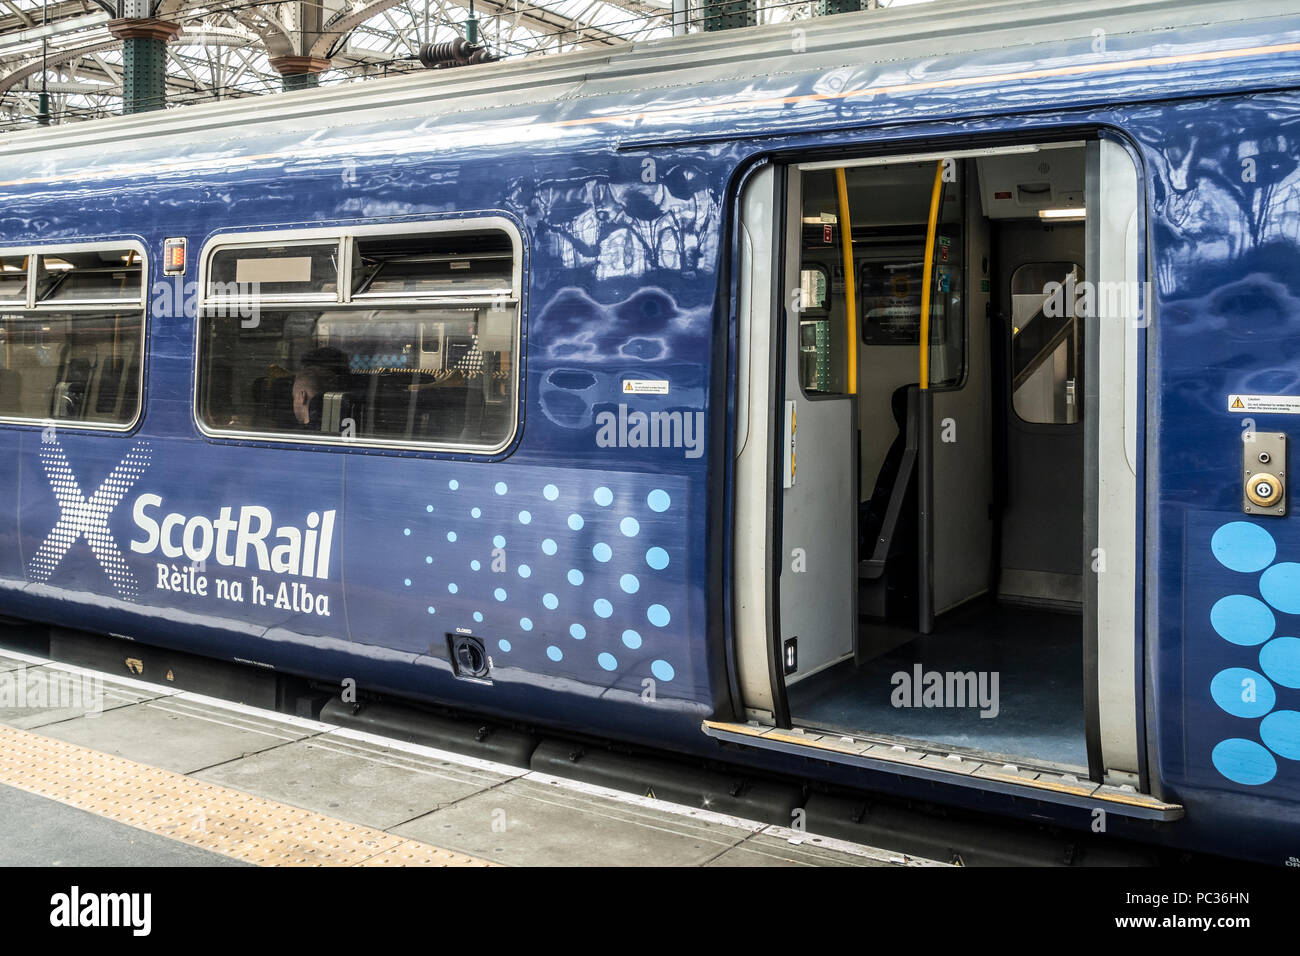 Scotrail train carriage with Saltire logo / branding, with open door. Passenger visible through window. Glasgow Central Station, - Stock Image